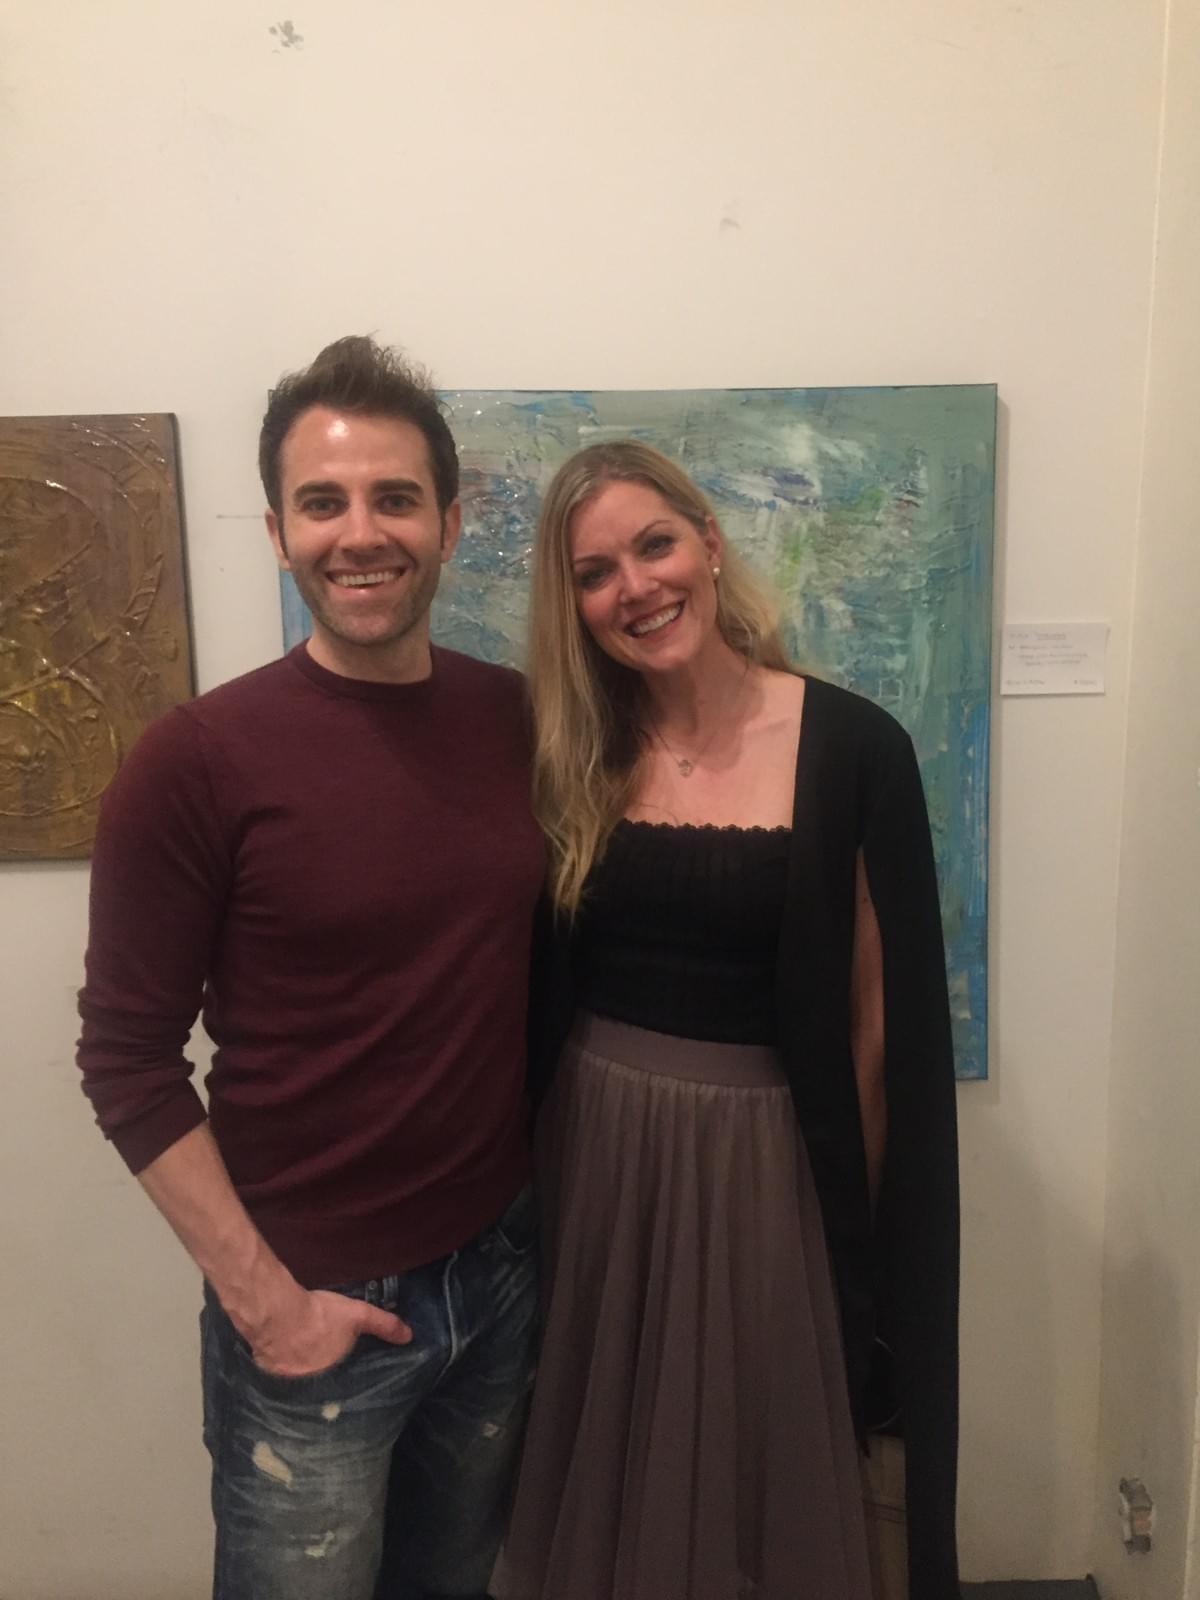 BEN WHITEHAIR, BETHANY LONDYN, ART SHOW, LOS ANGELES ART SHOW, LOS ANGELES, ARTIST